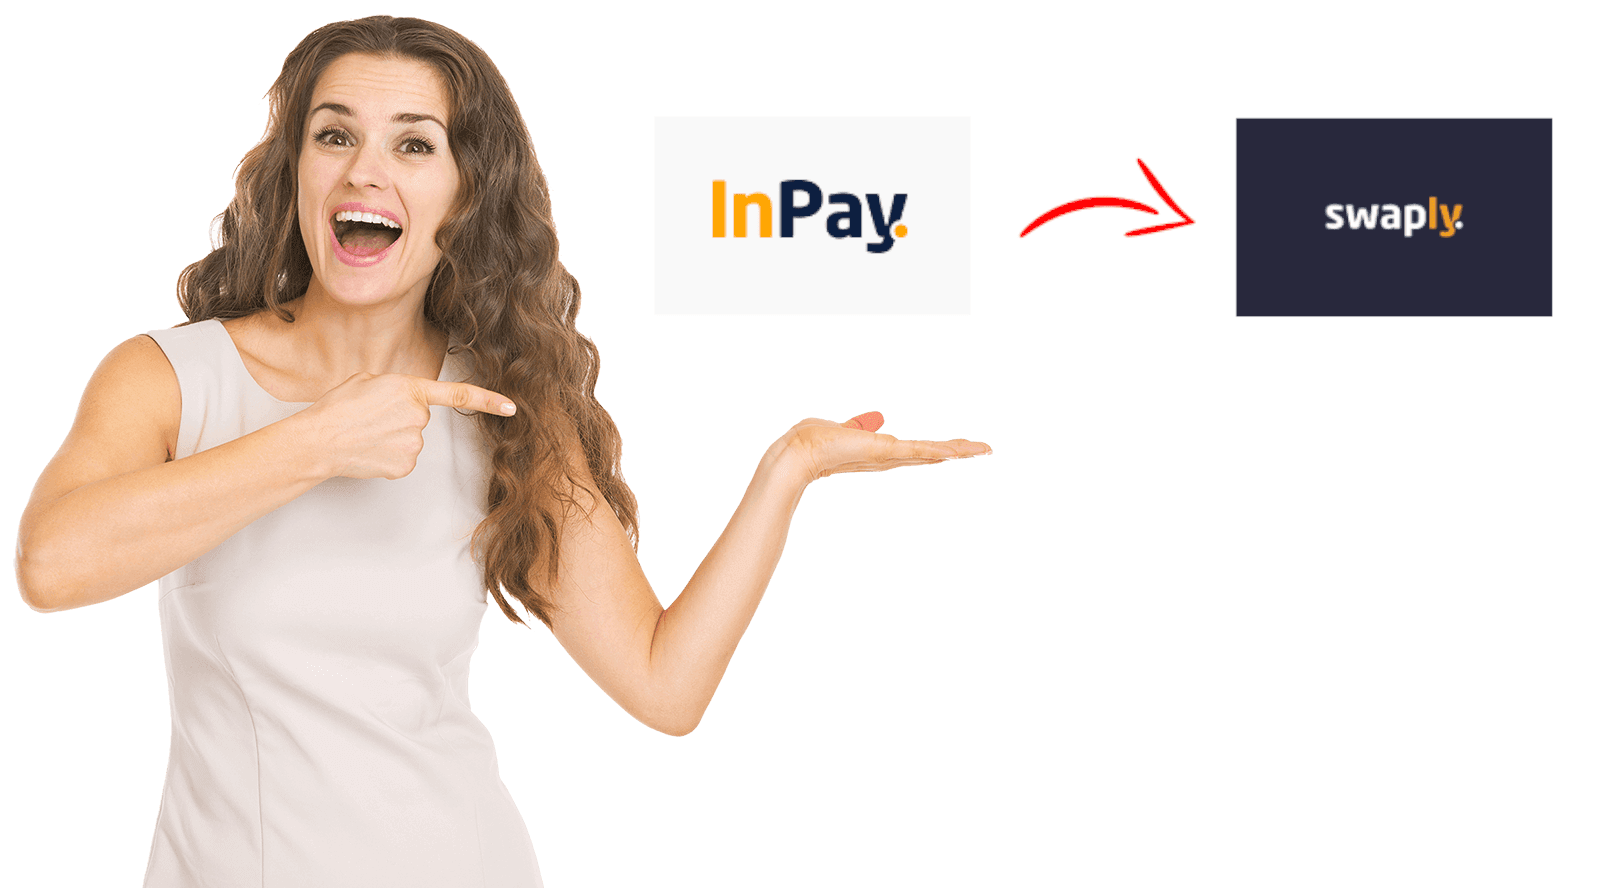 inpay to swaply